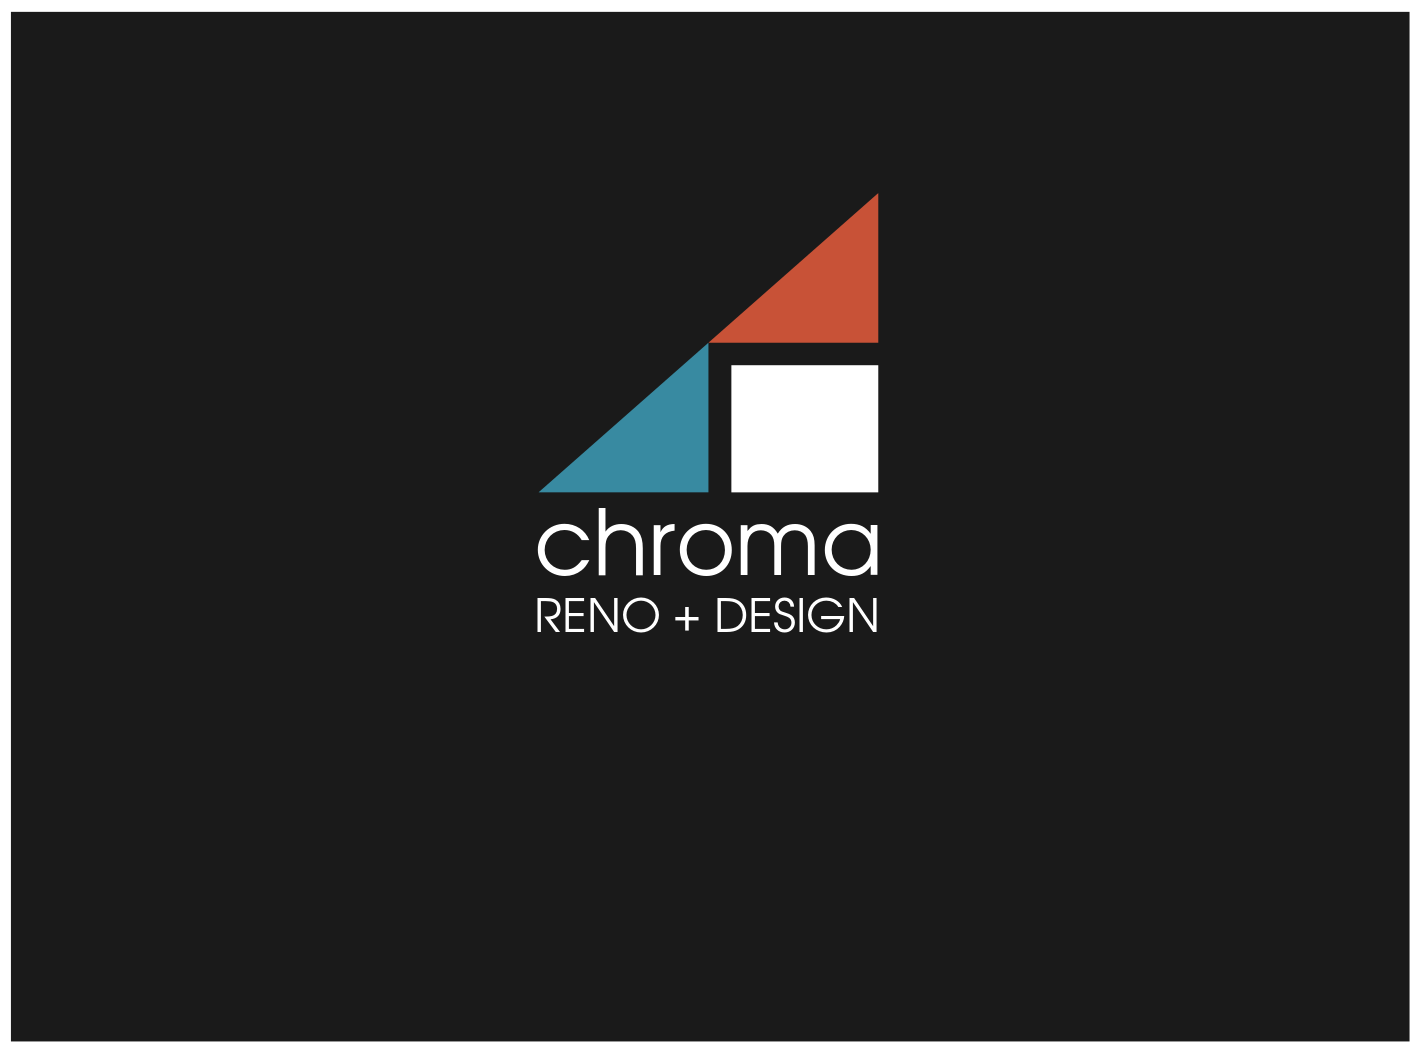 Logo Design by JaroslavProcka - Entry No. 235 in the Logo Design Contest Inspiring Logo Design for Chroma Reno+Design.